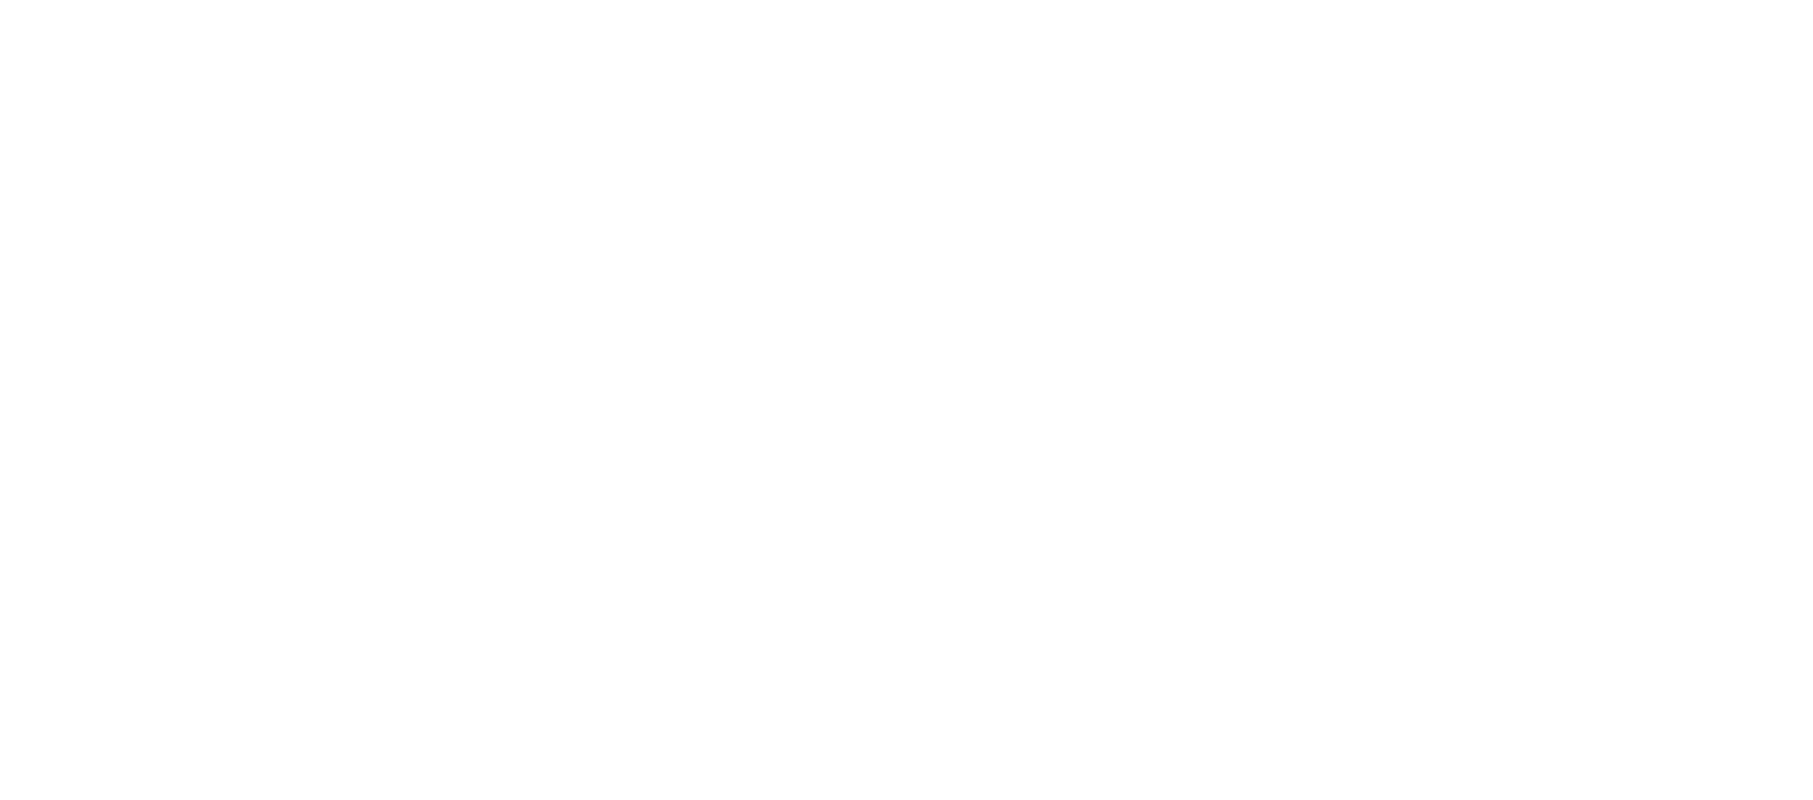 WhatsBehindTheDots